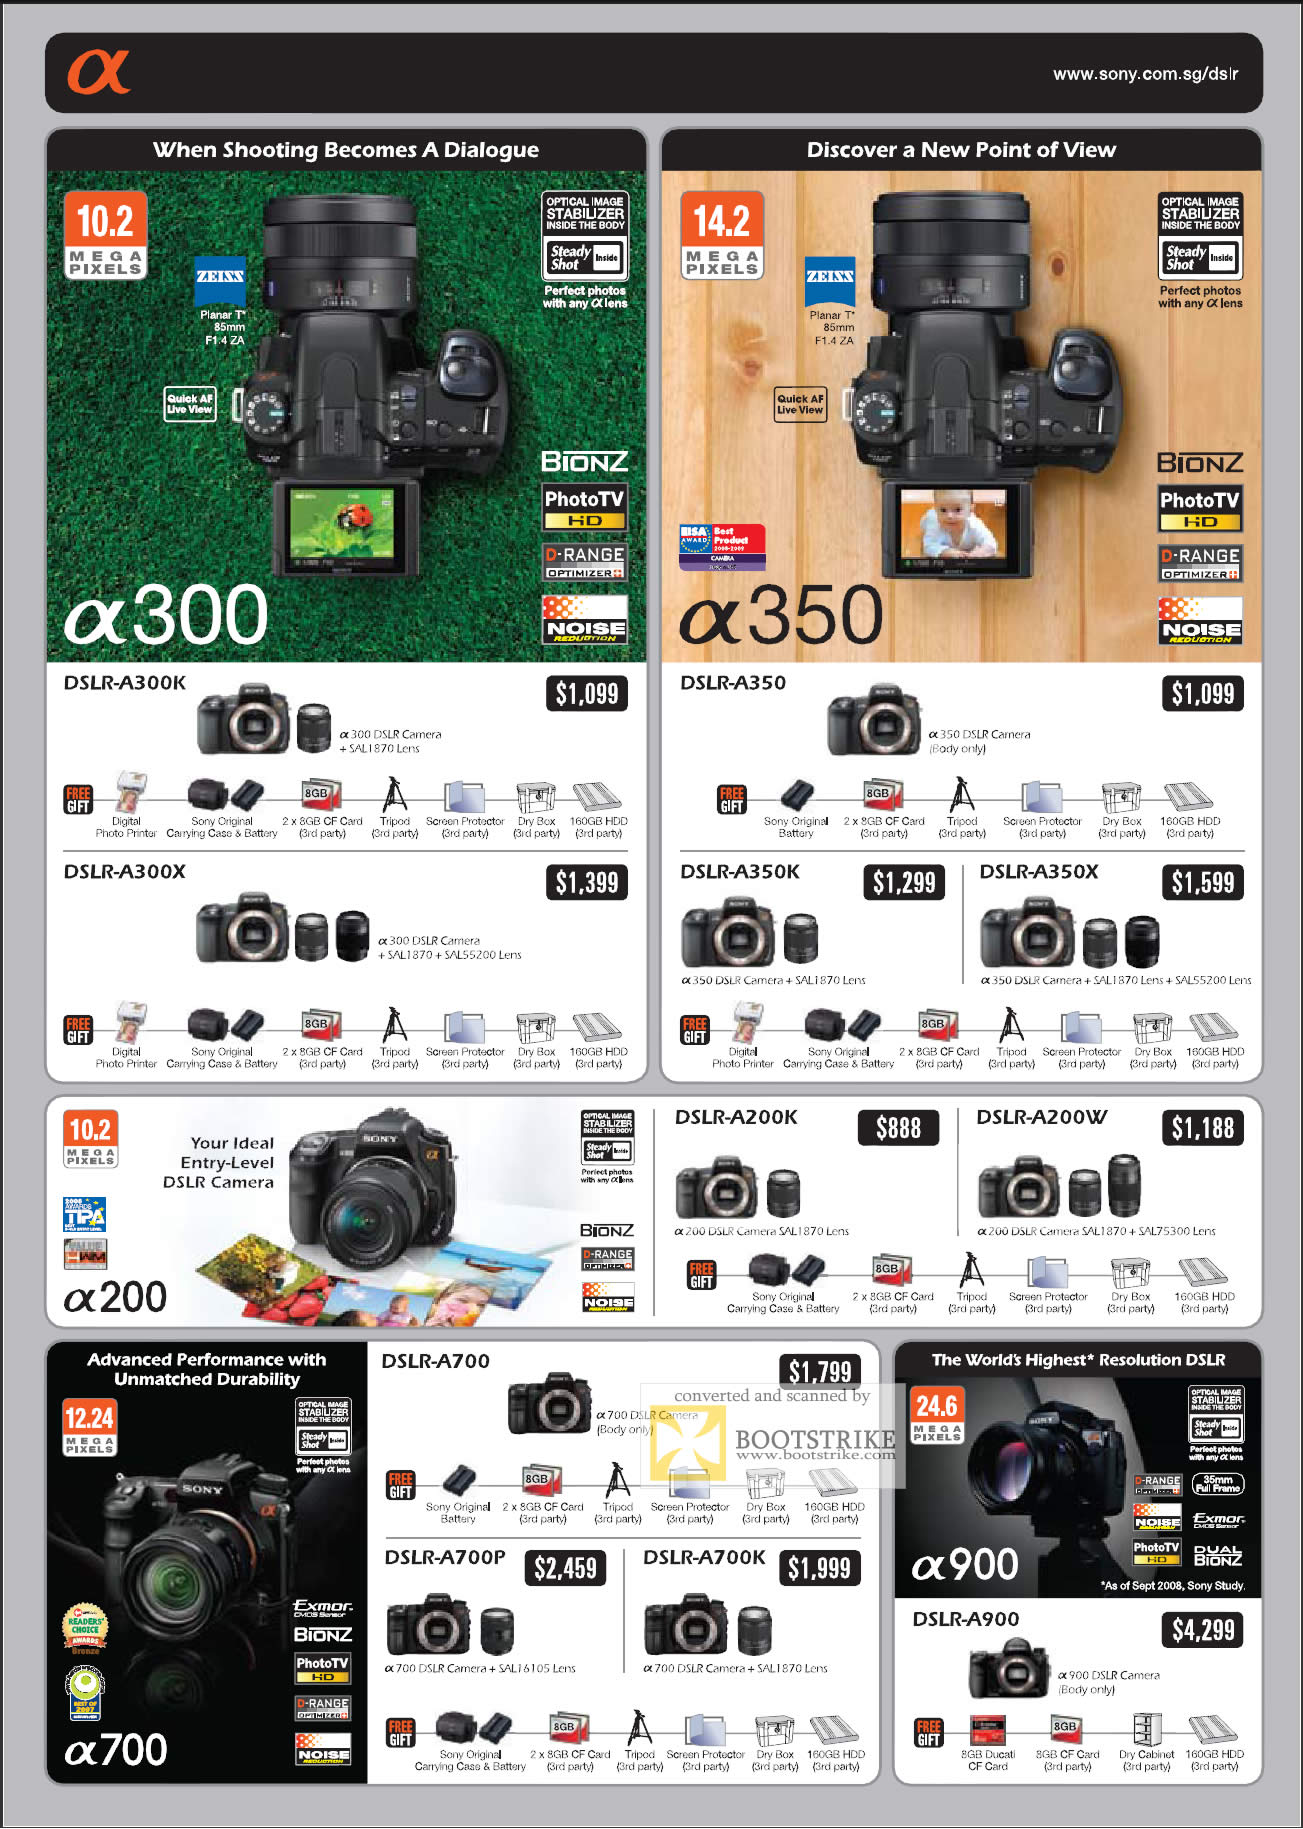 Camera List Of Sony Dslr Camera With Price sony alpha camera dslr it show 2009 price list brochure flyer image of dslr